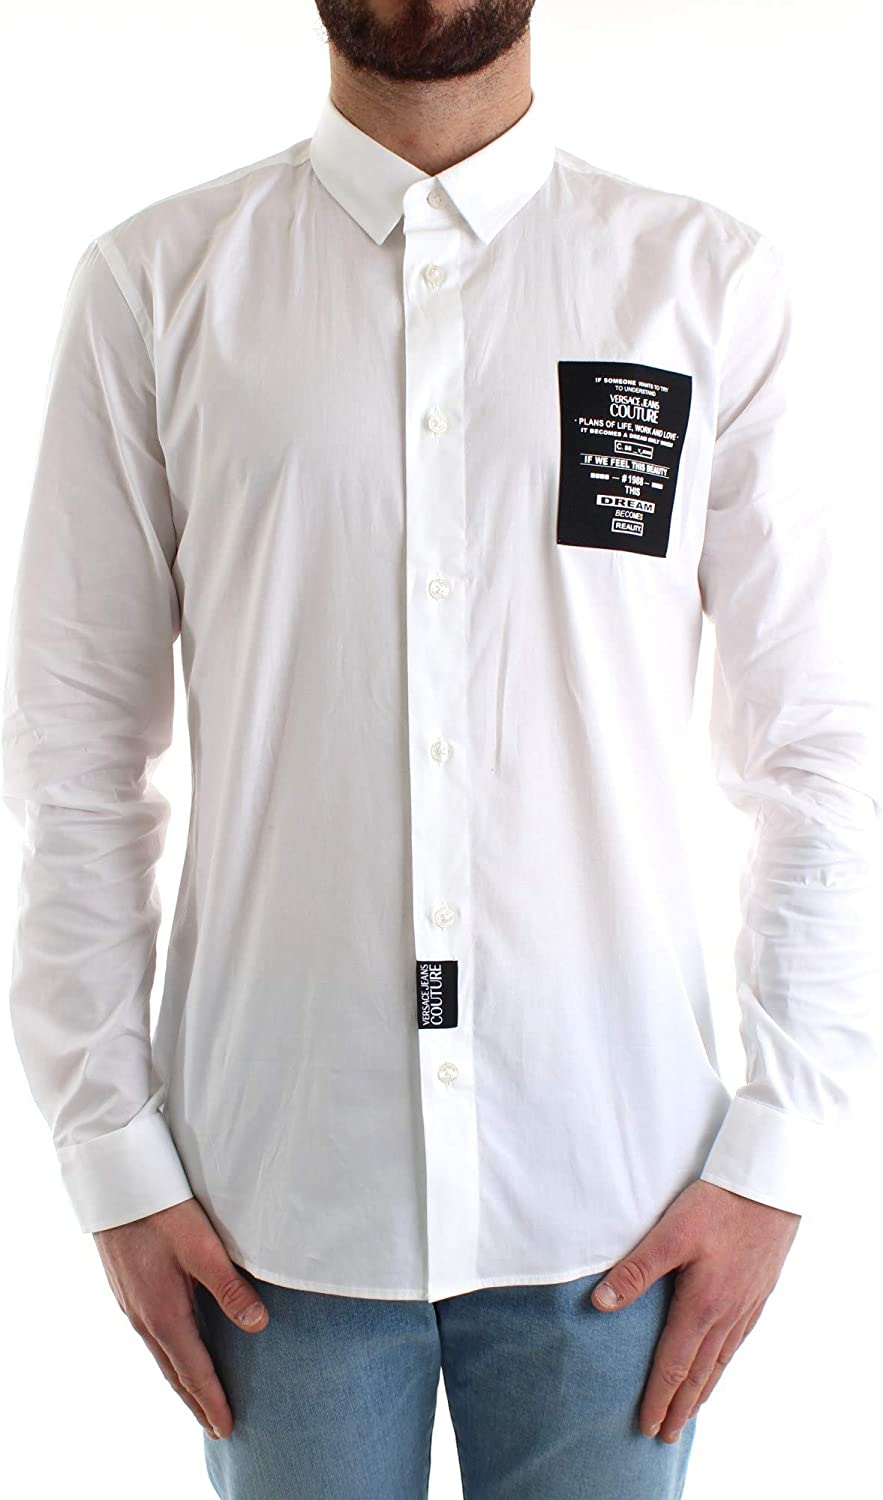 Versace Jeans Couture - Camisa B1GVB6S030205 Shirt New Stretch Basic White - B1GVB6S030205